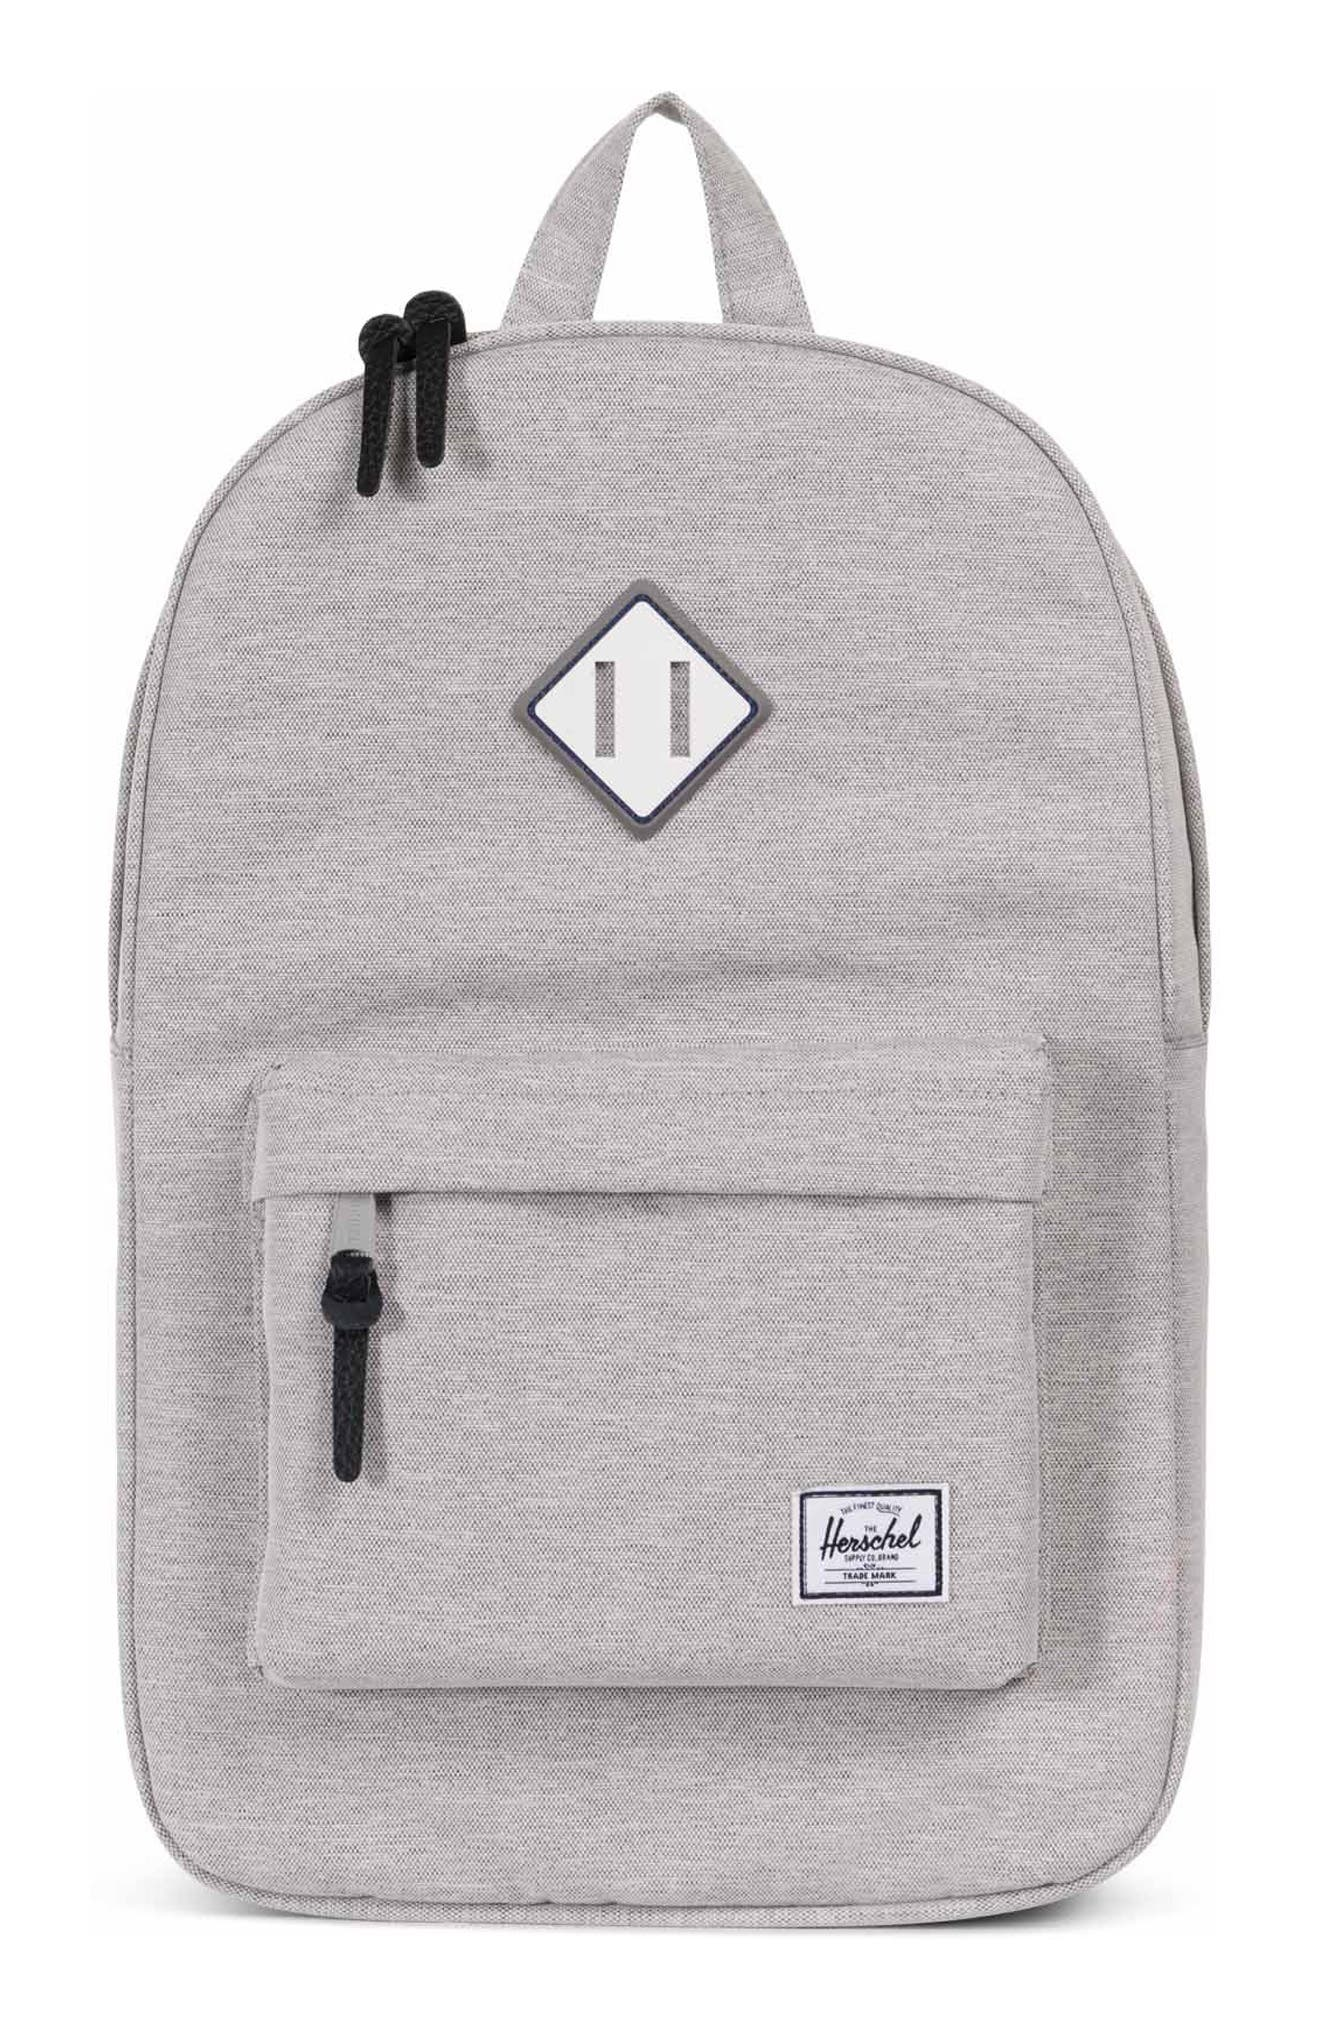 Heritage Backpack,                             Main thumbnail 1, color,                             Grey Crosshatch/ Blue Stripe